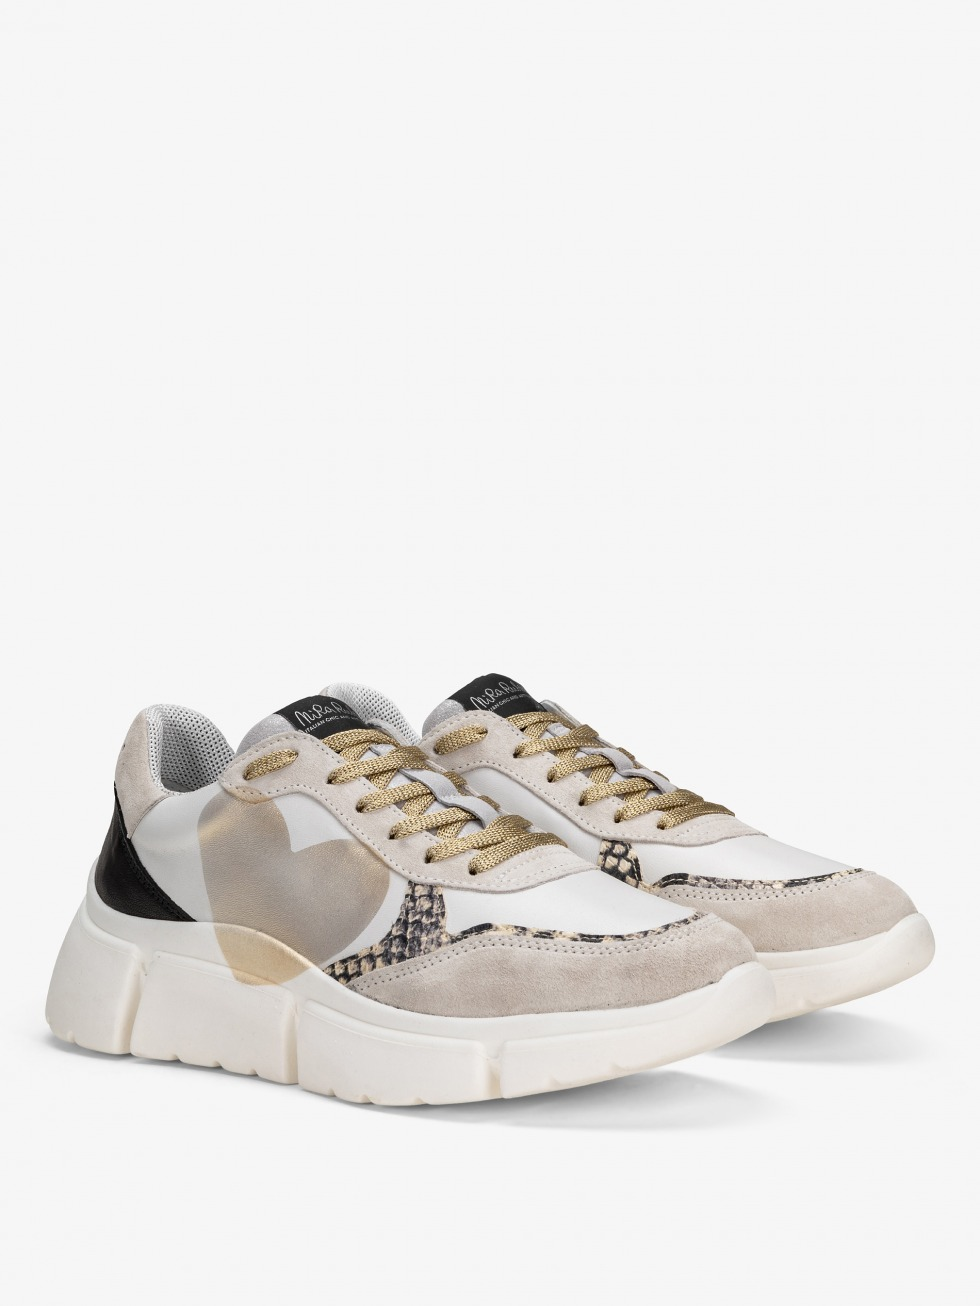 Stinger Chunky Sneakers - Urban Heart